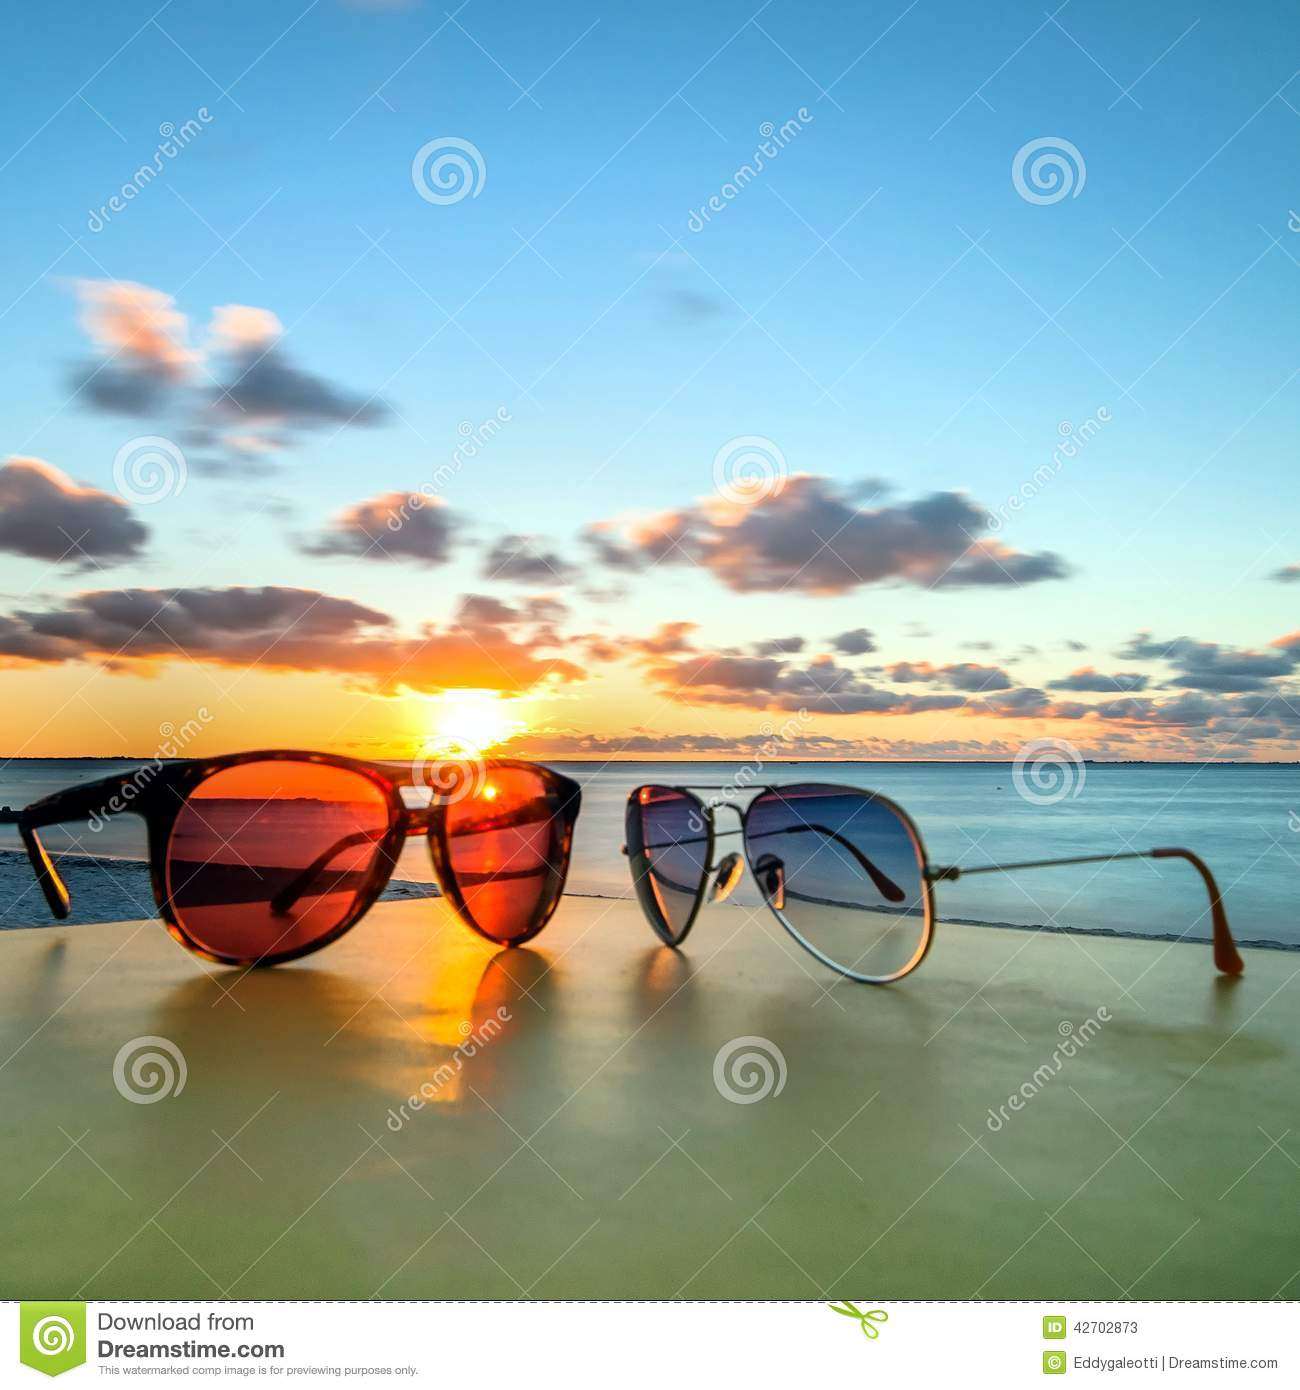 Sunglasses On Tropical Beach Table At Sunset Stock Image